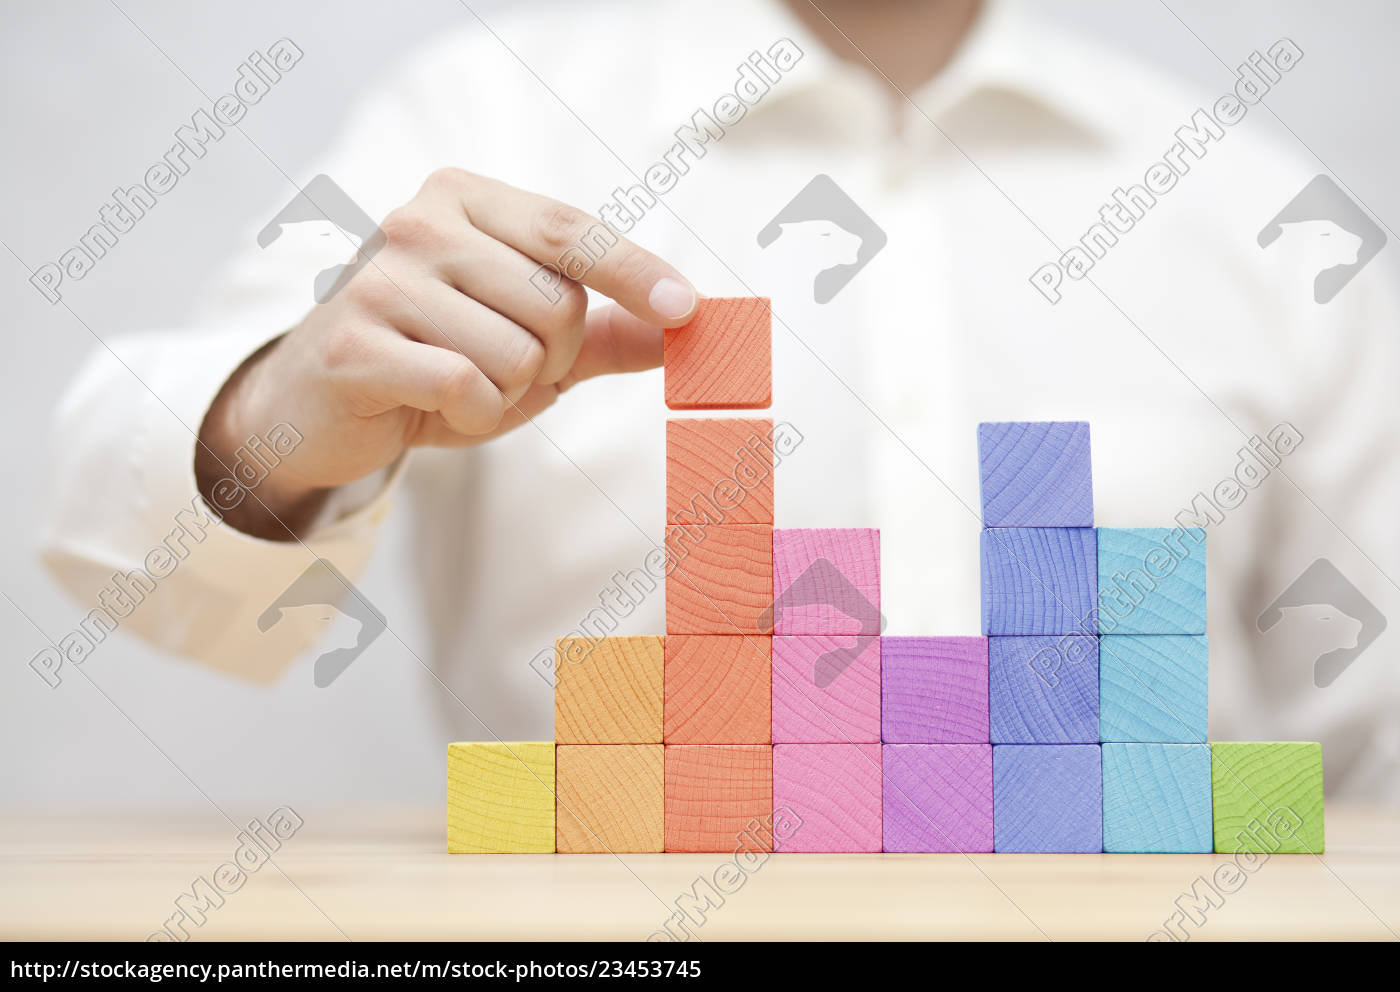 man's, hand, stacking, colorful, wooden, blocks. - 23453745